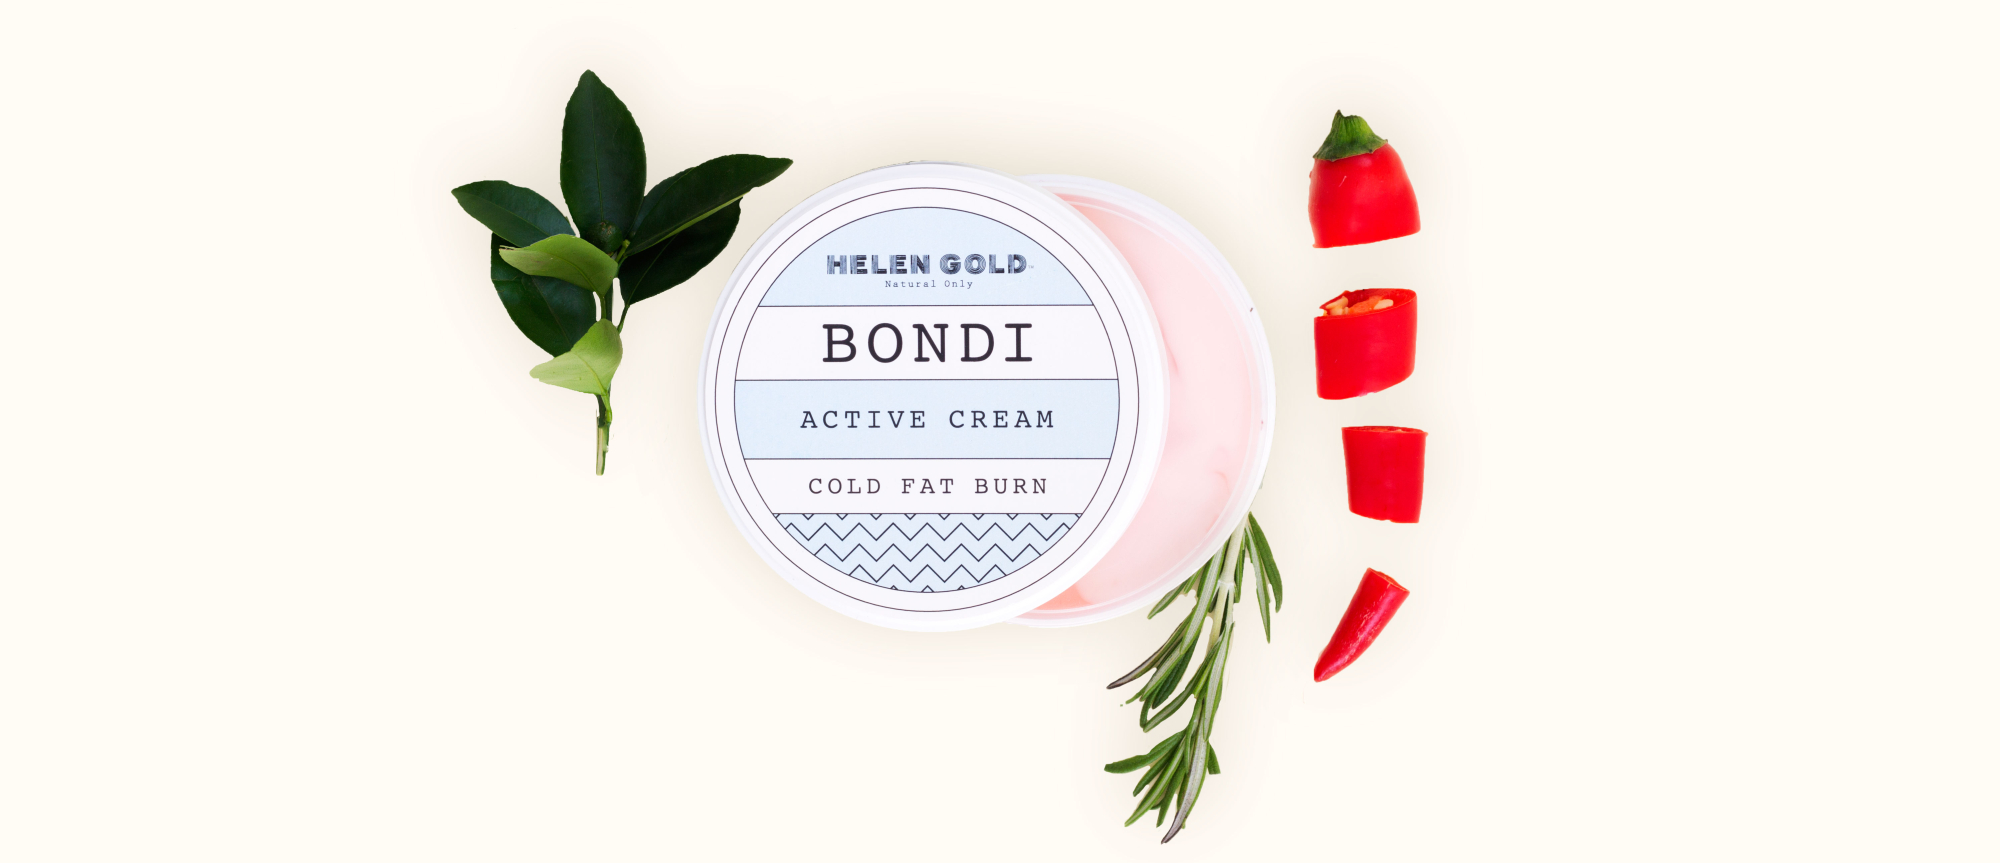 Средства для тела Cold Fat Burn Active Cream серии Bondi от Helen Gold, аромат - , 200 г